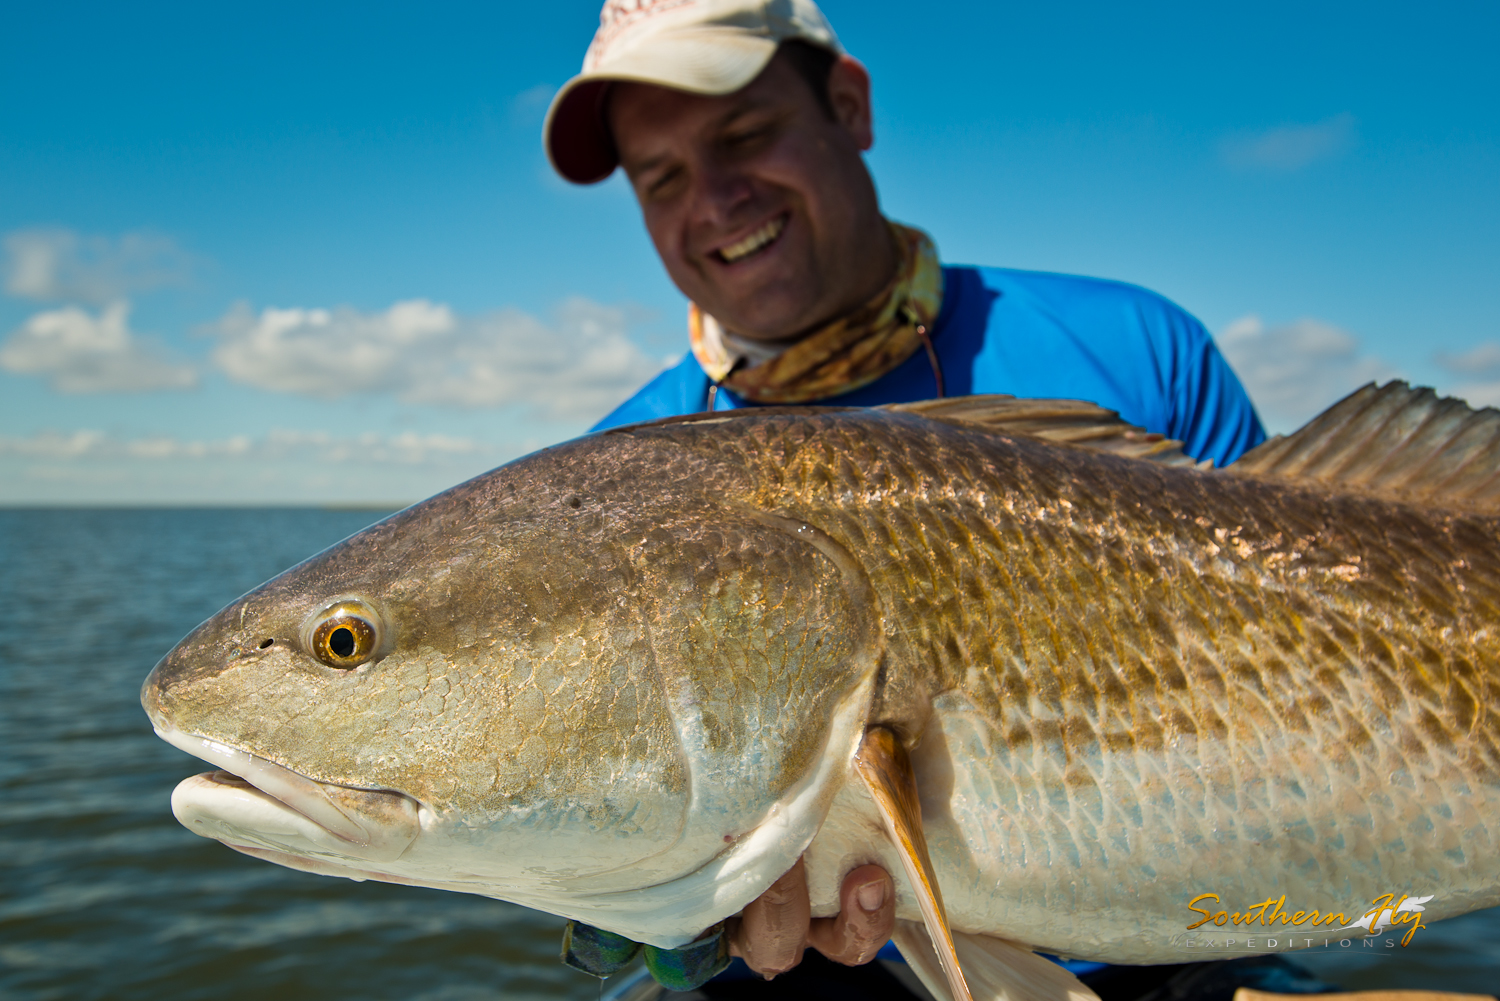 where to find redfish in Louisiana waters Southern Fly Expeditions and captain brandon keck